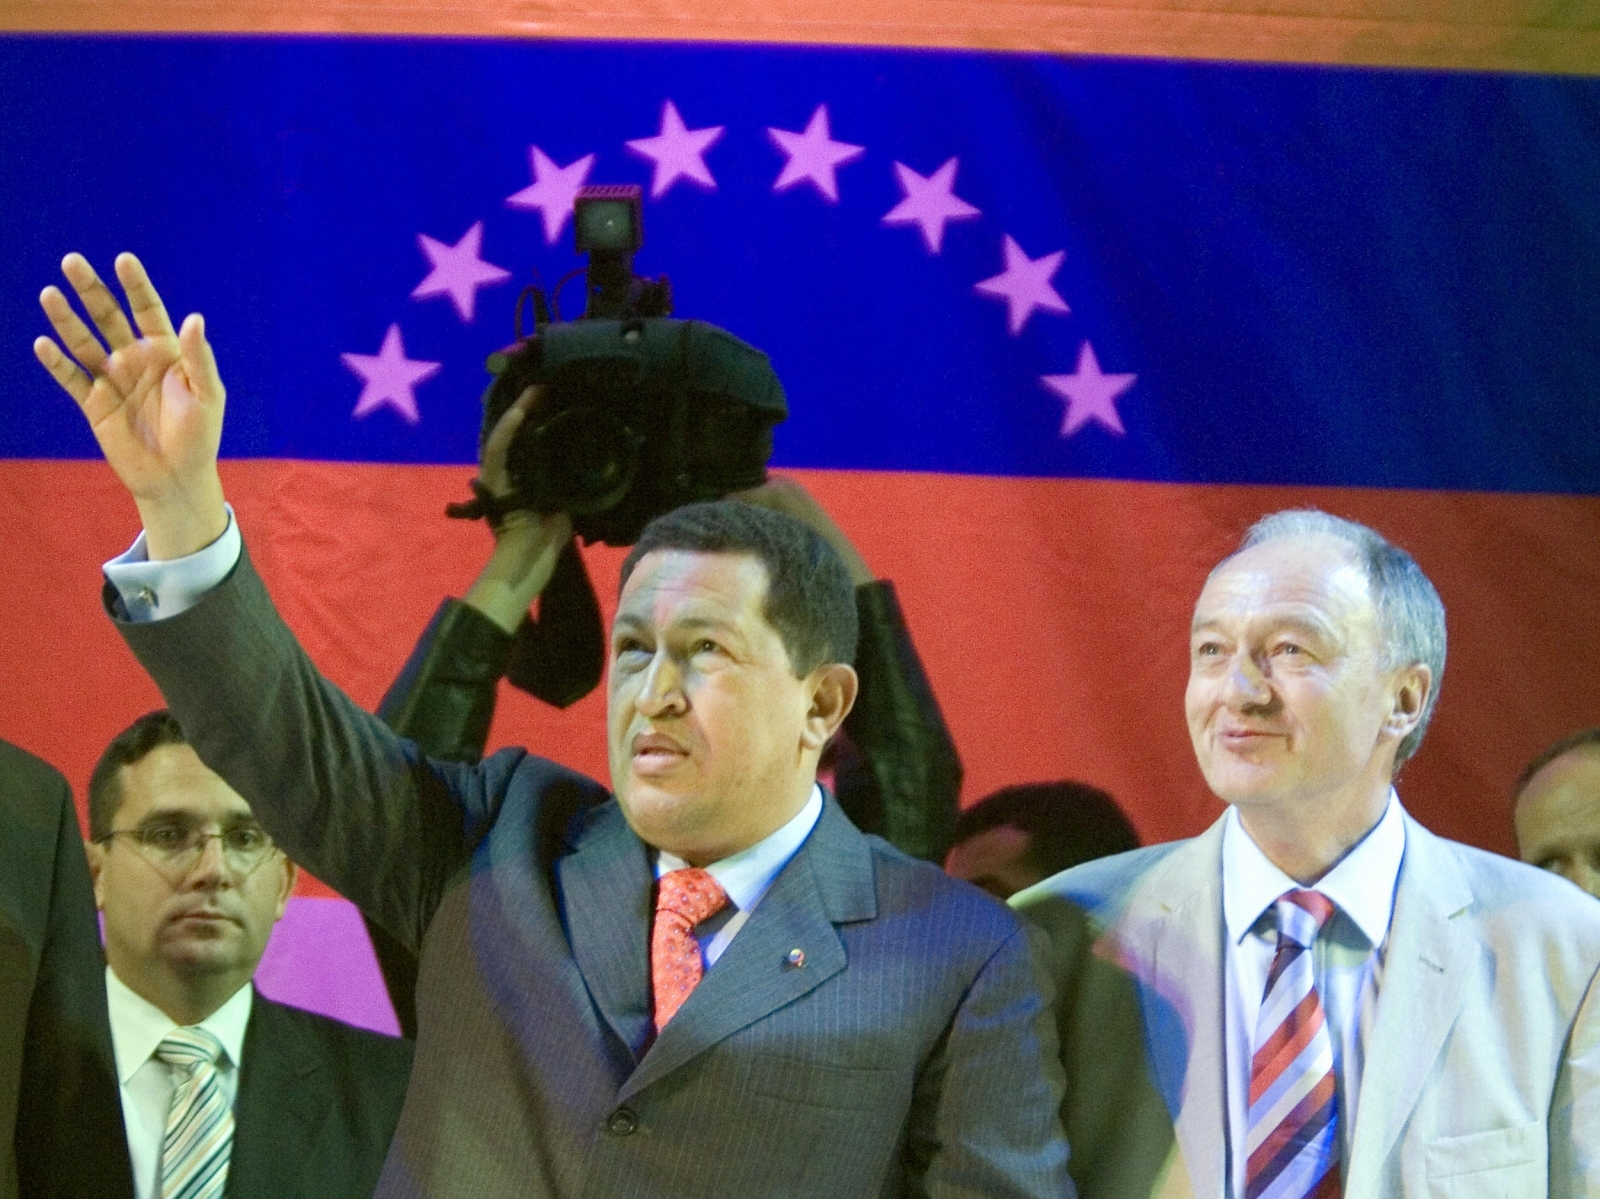 Hugo Chávez and Ken Livingstone